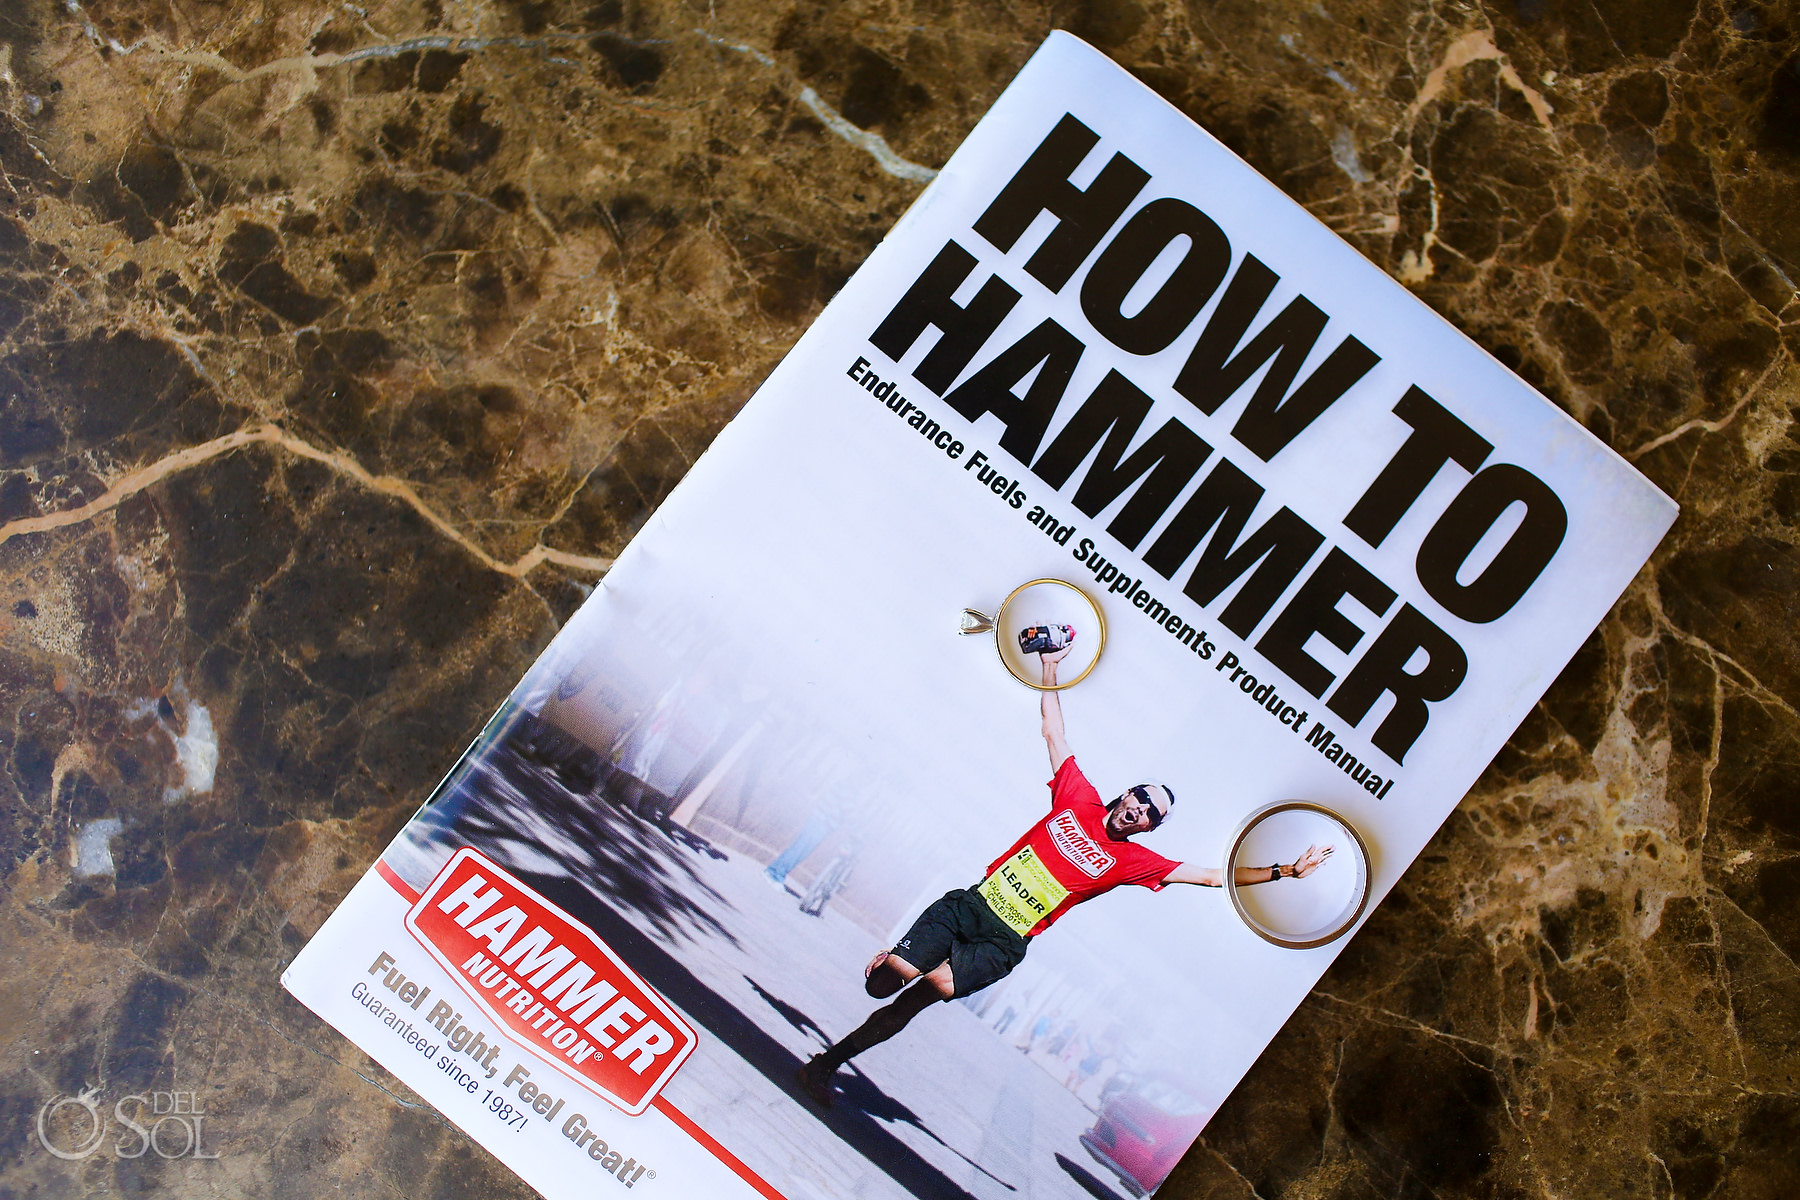 Traithlon triathlete wedding sponsored by Hammer nutrition How to Hammer wedding rings